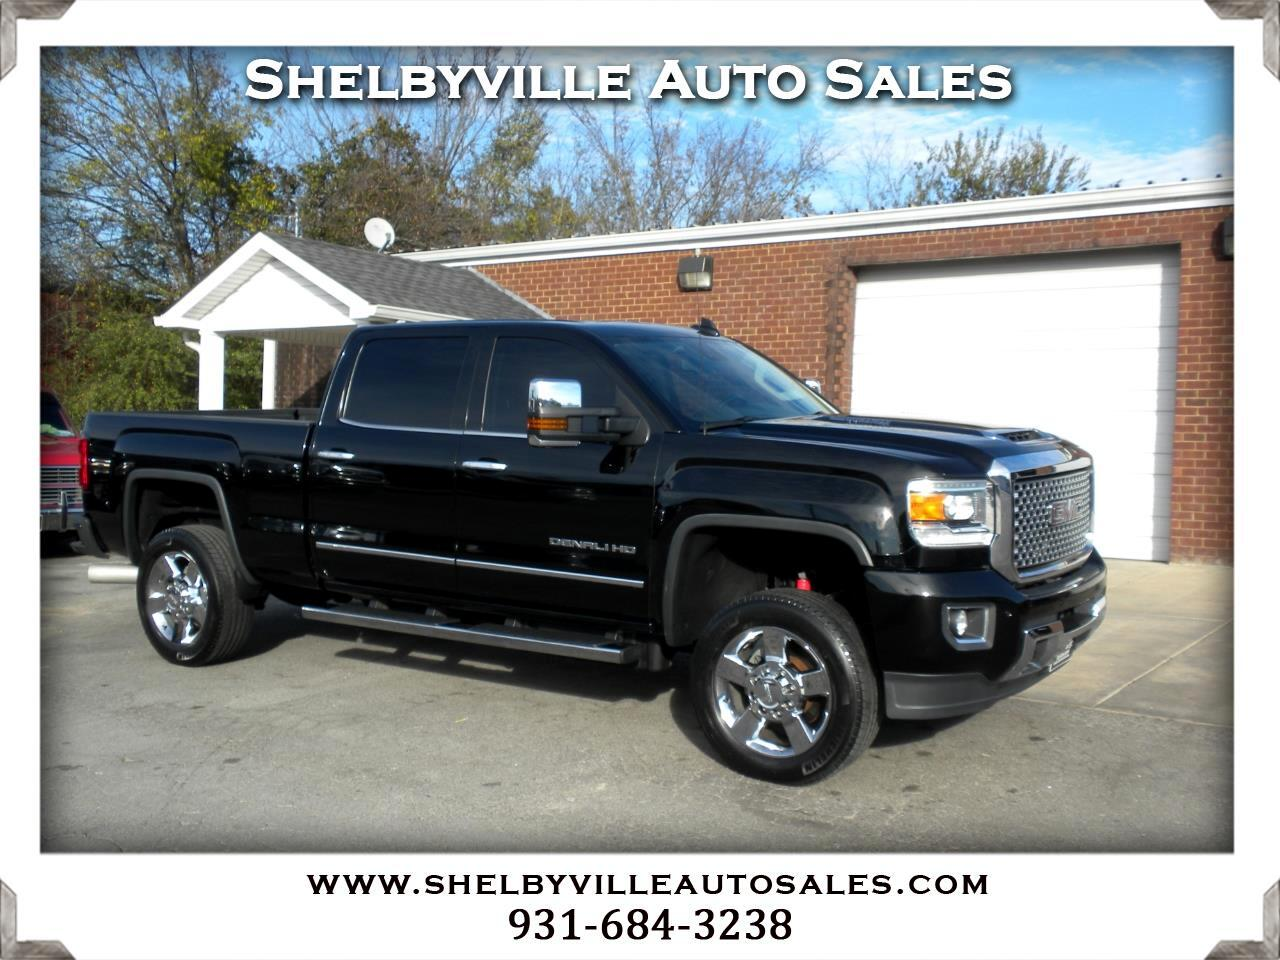 2015 GMC Sierra 2500HD available WiFi 4x4 Crew Cab Denali